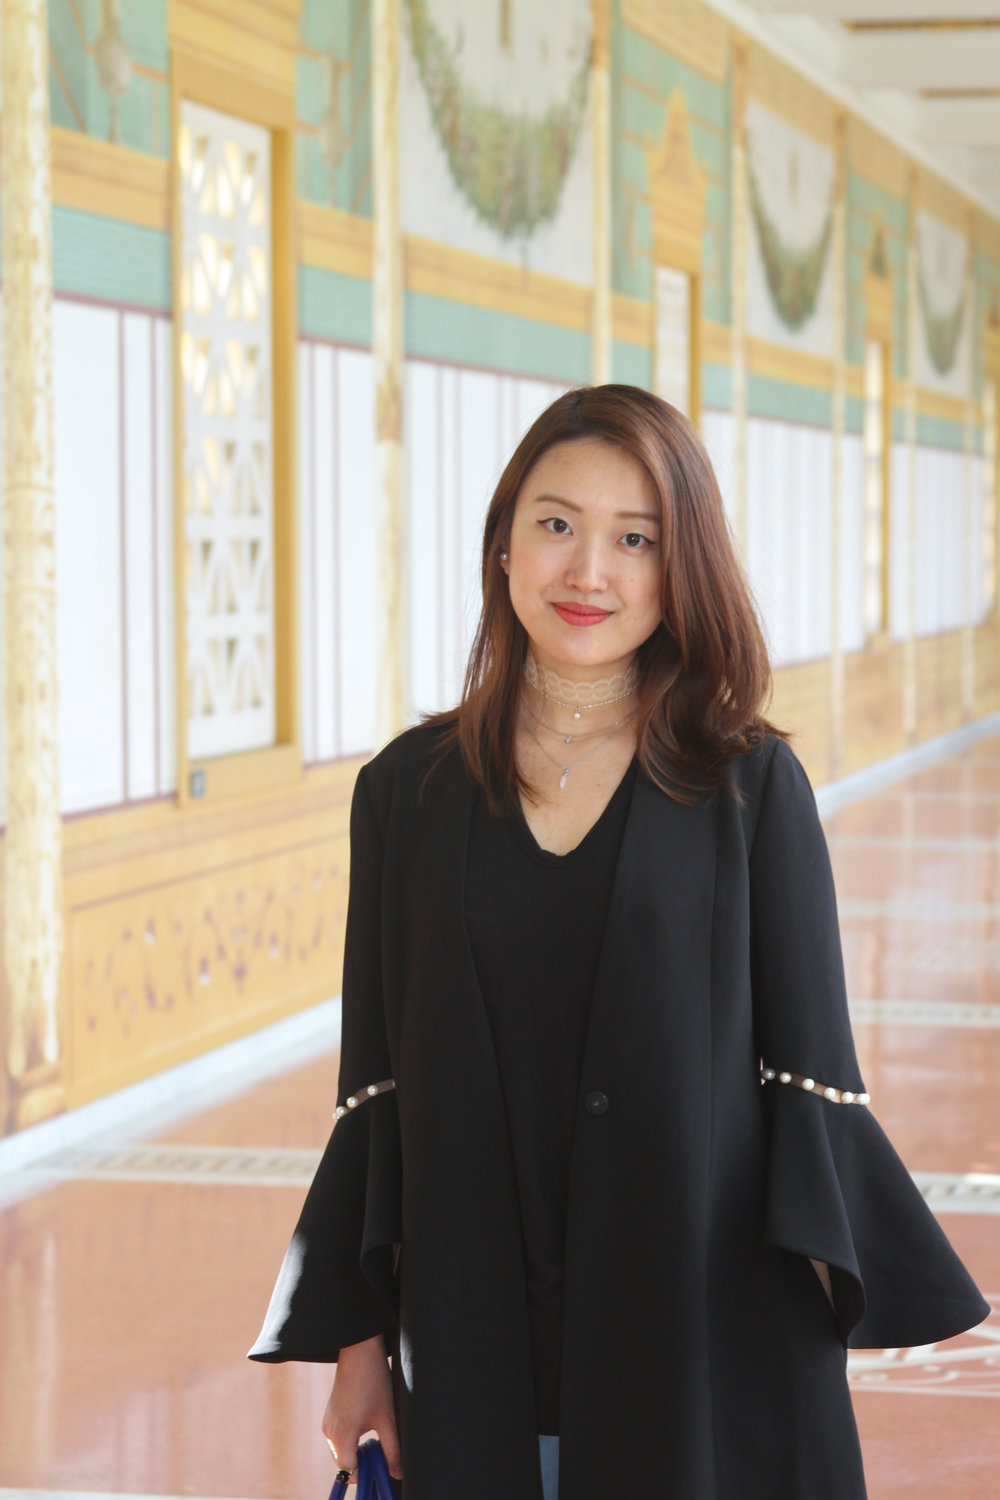 june lemon girl, junelemongirl, new york fashion, new york fashion blogger, bell sleeve, pearl sleeve, dress coat, black tee, spring street fashion, lace choker necklace, getty villa, getty museum, los angeles, spring fashion, ootd